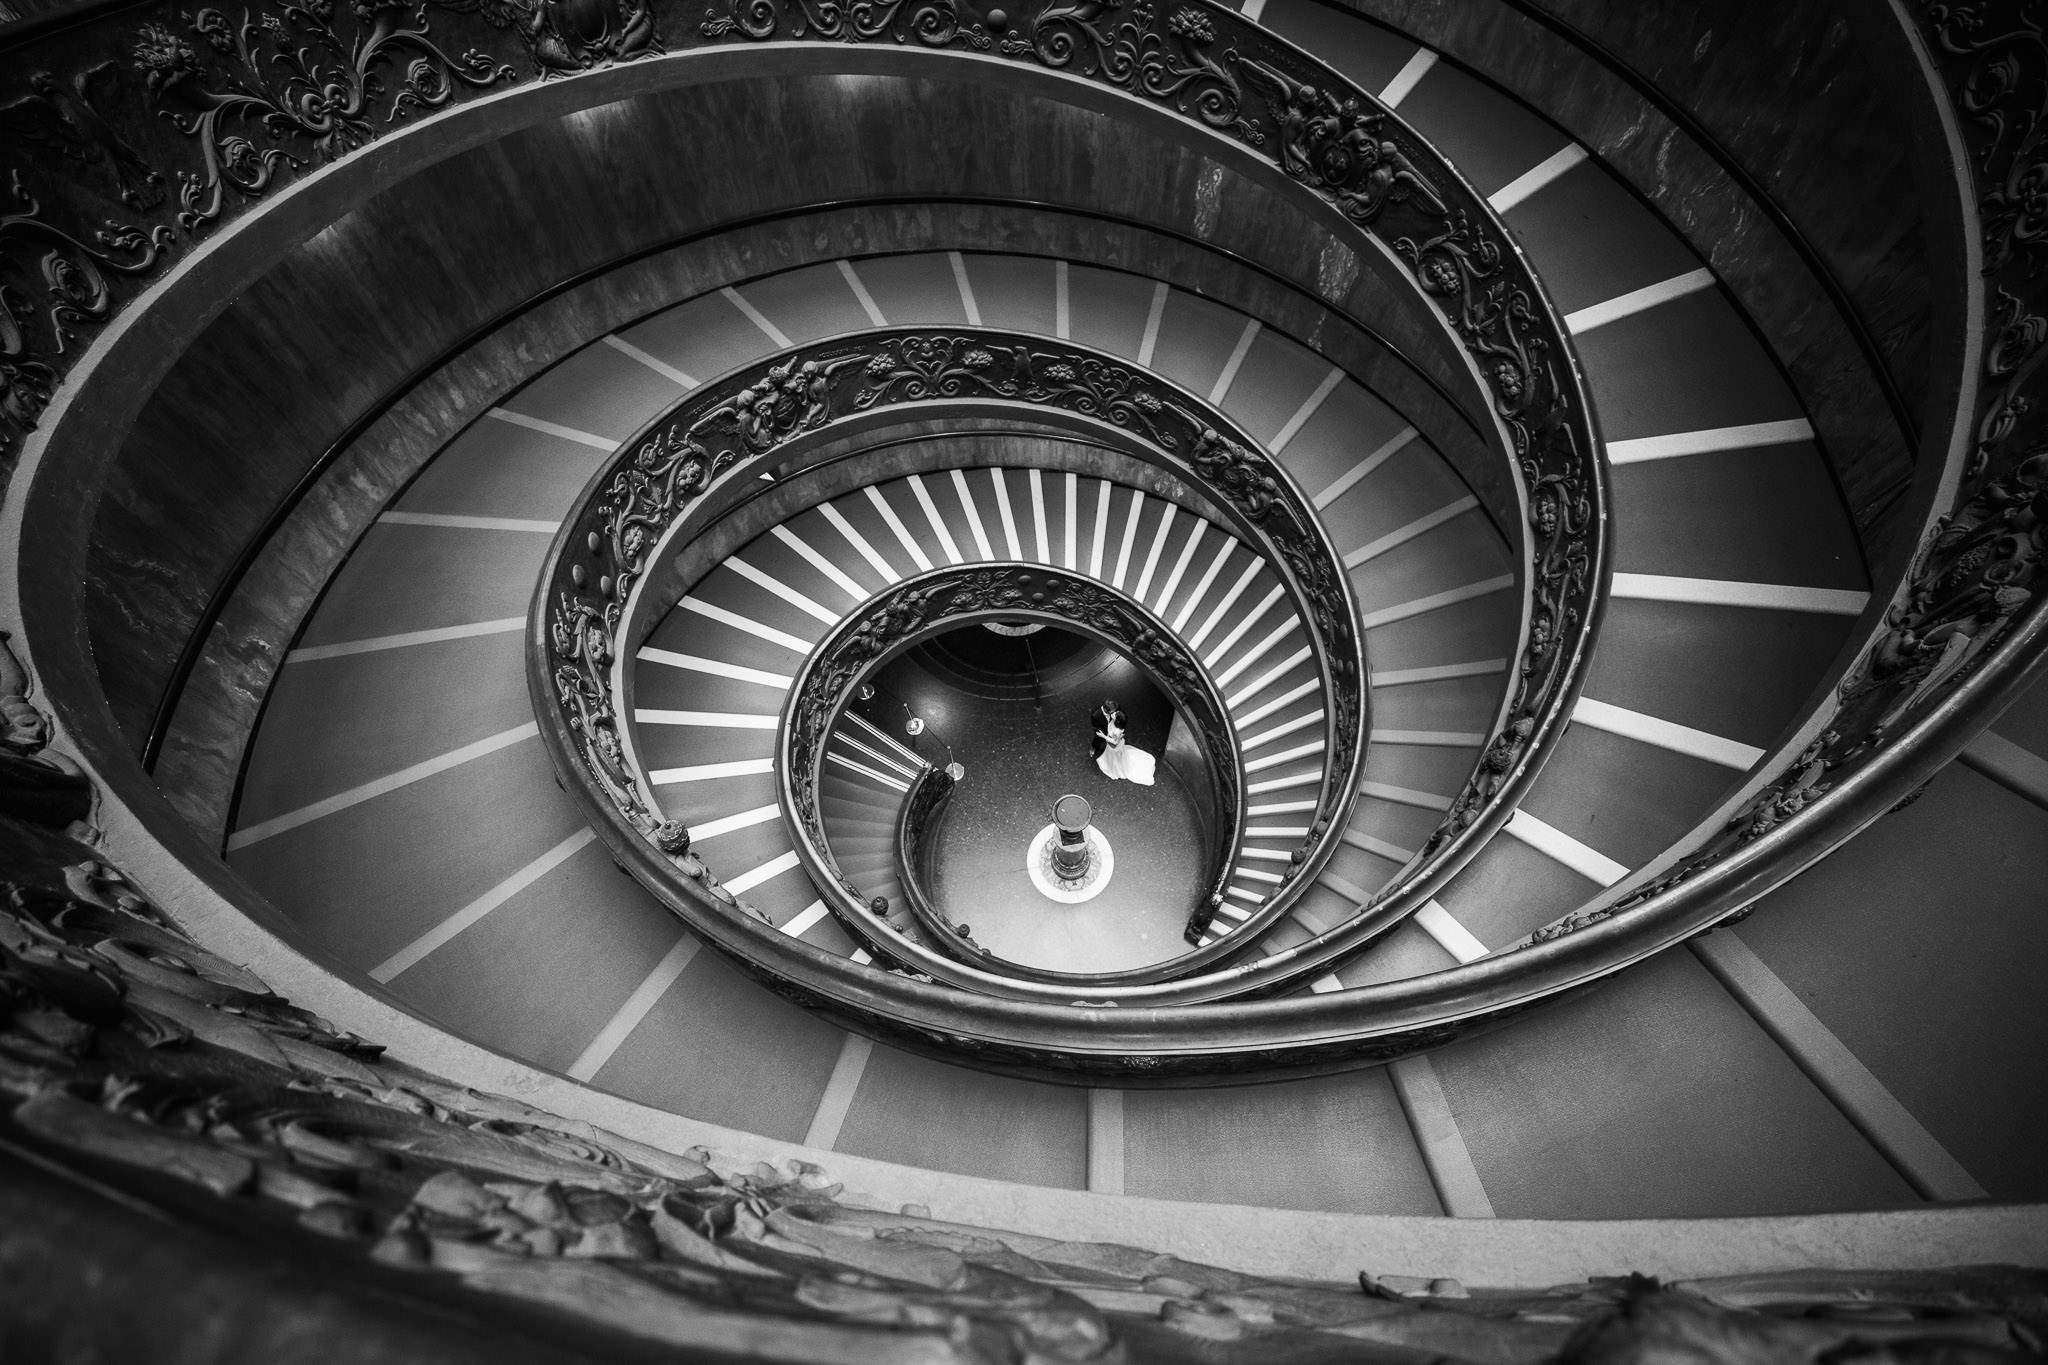 Ernst Merkhofer Exclusive, Fotograf, Rom , Exlusive, Signature Shots , Ernst Merkhofer, Pärchen, junges Paar, Foto Session, Photo Shoot, Staircase, Love, Portraits, Portrait, Rome, sw, bnw,